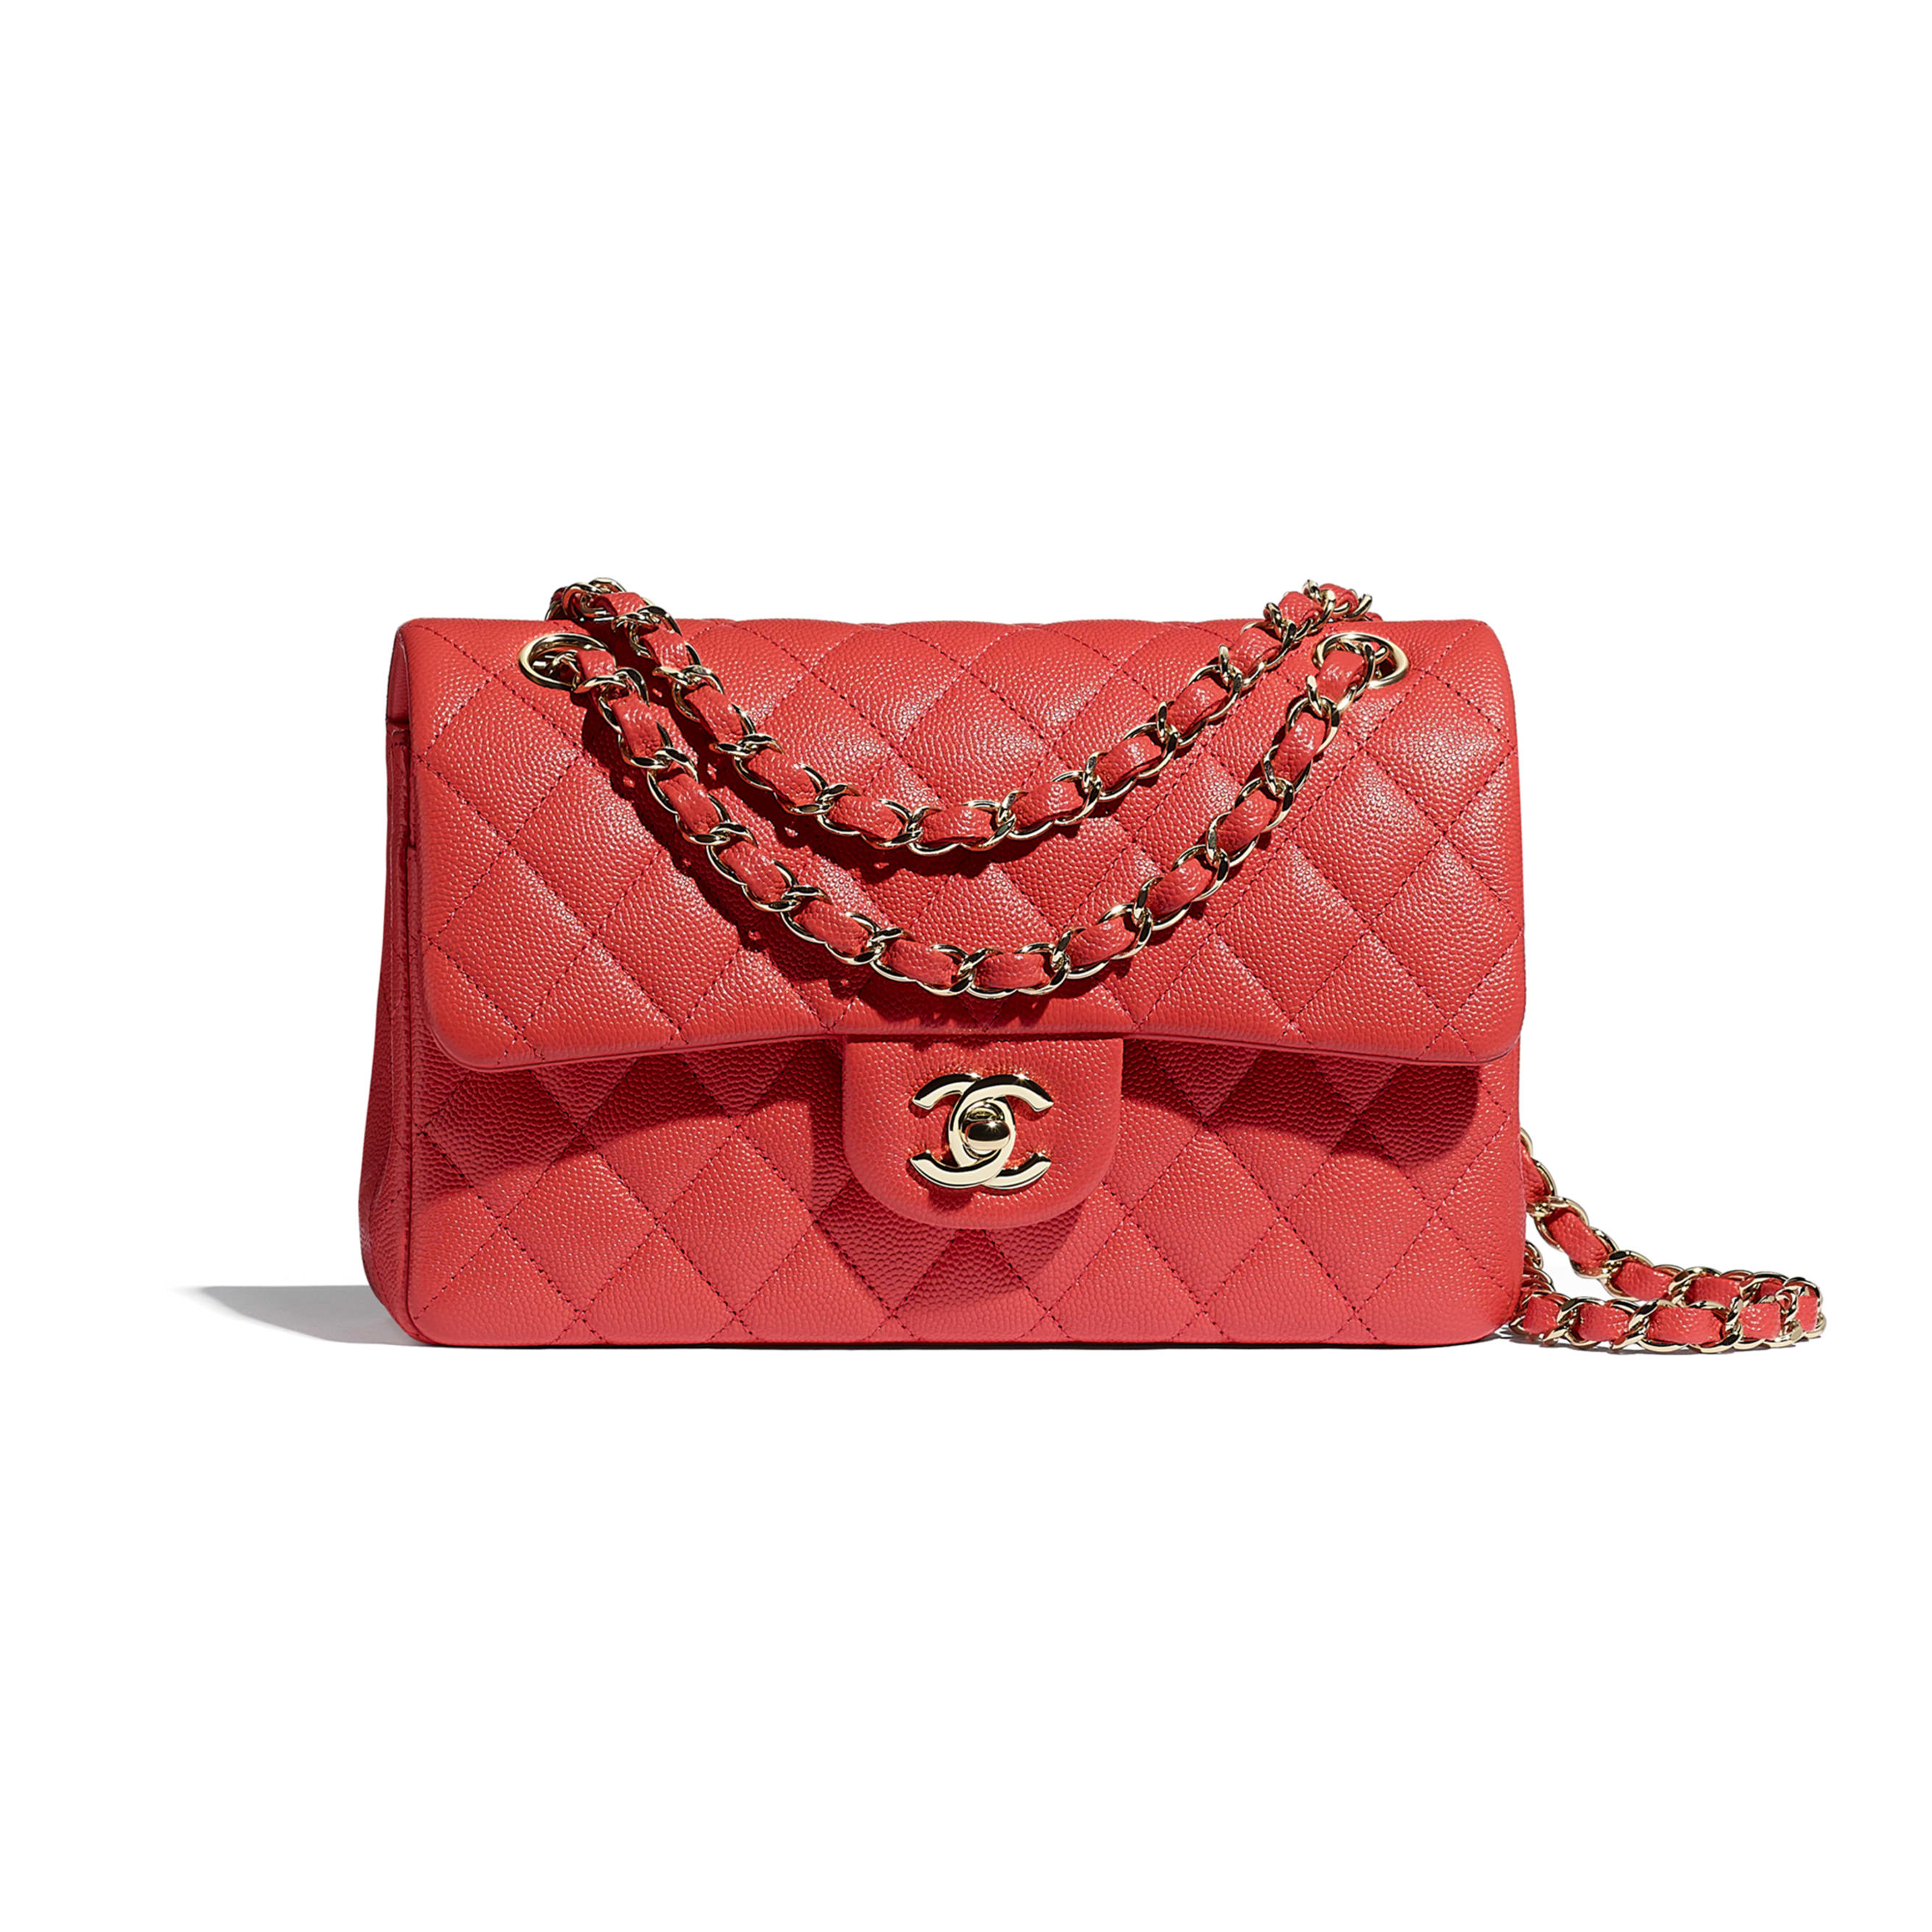 Small Classic Handbag - Red - Grained Calfskin & Gold-Tone Metal - CHANEL - Default view - see standard sized version